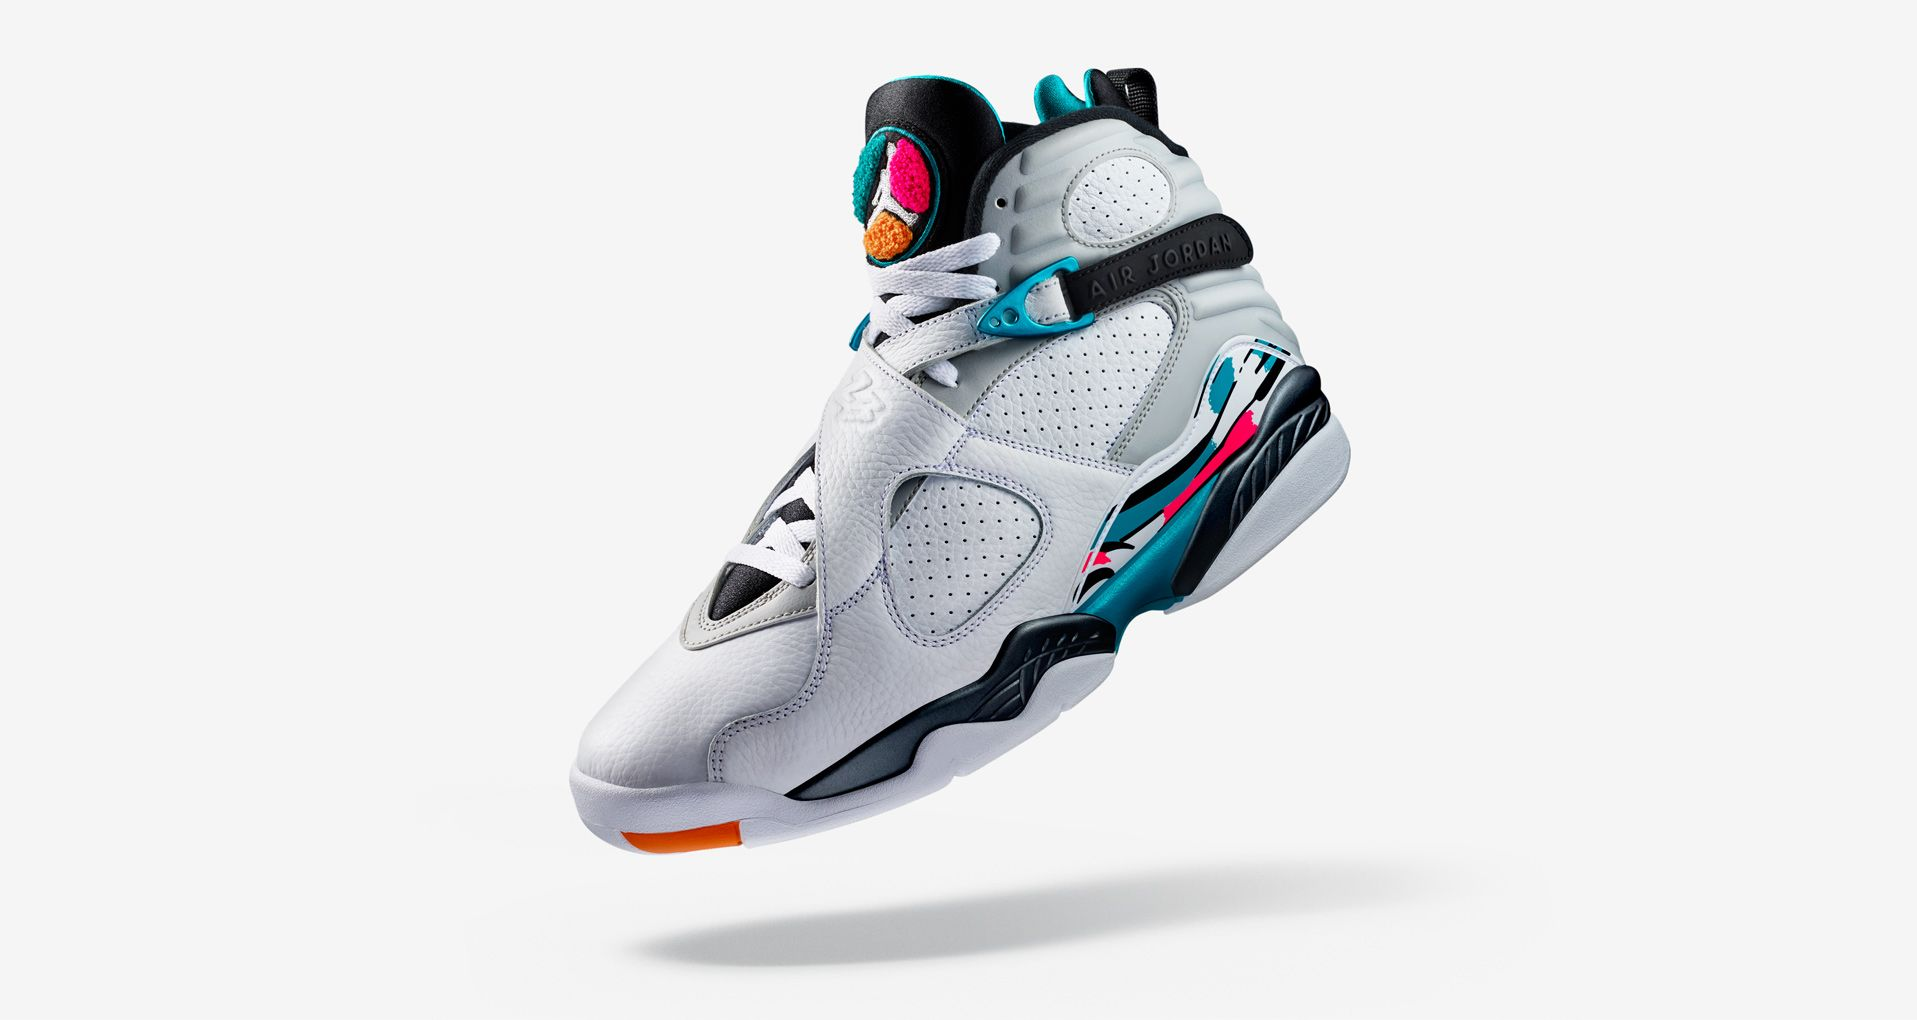 official photos b3888 8ed34 Air Jordan 8 Retro  White  amp  Turbo Green  Release Date. Nike⁠+ ...